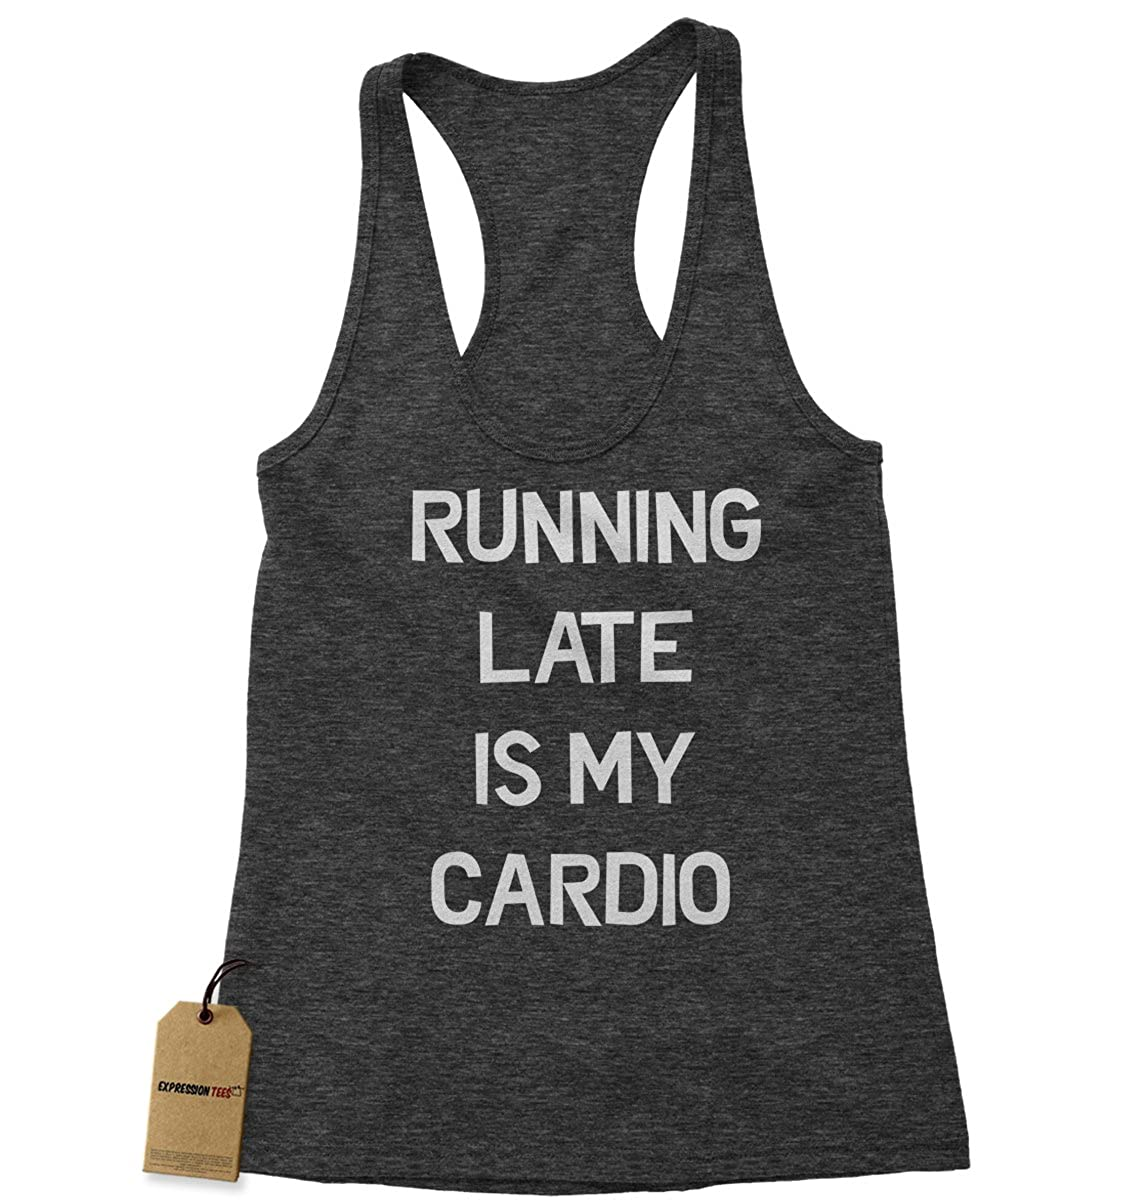 Expression Tees Running Late Is My Cardio Triblend Racerback Tank Top for Women 1766-R